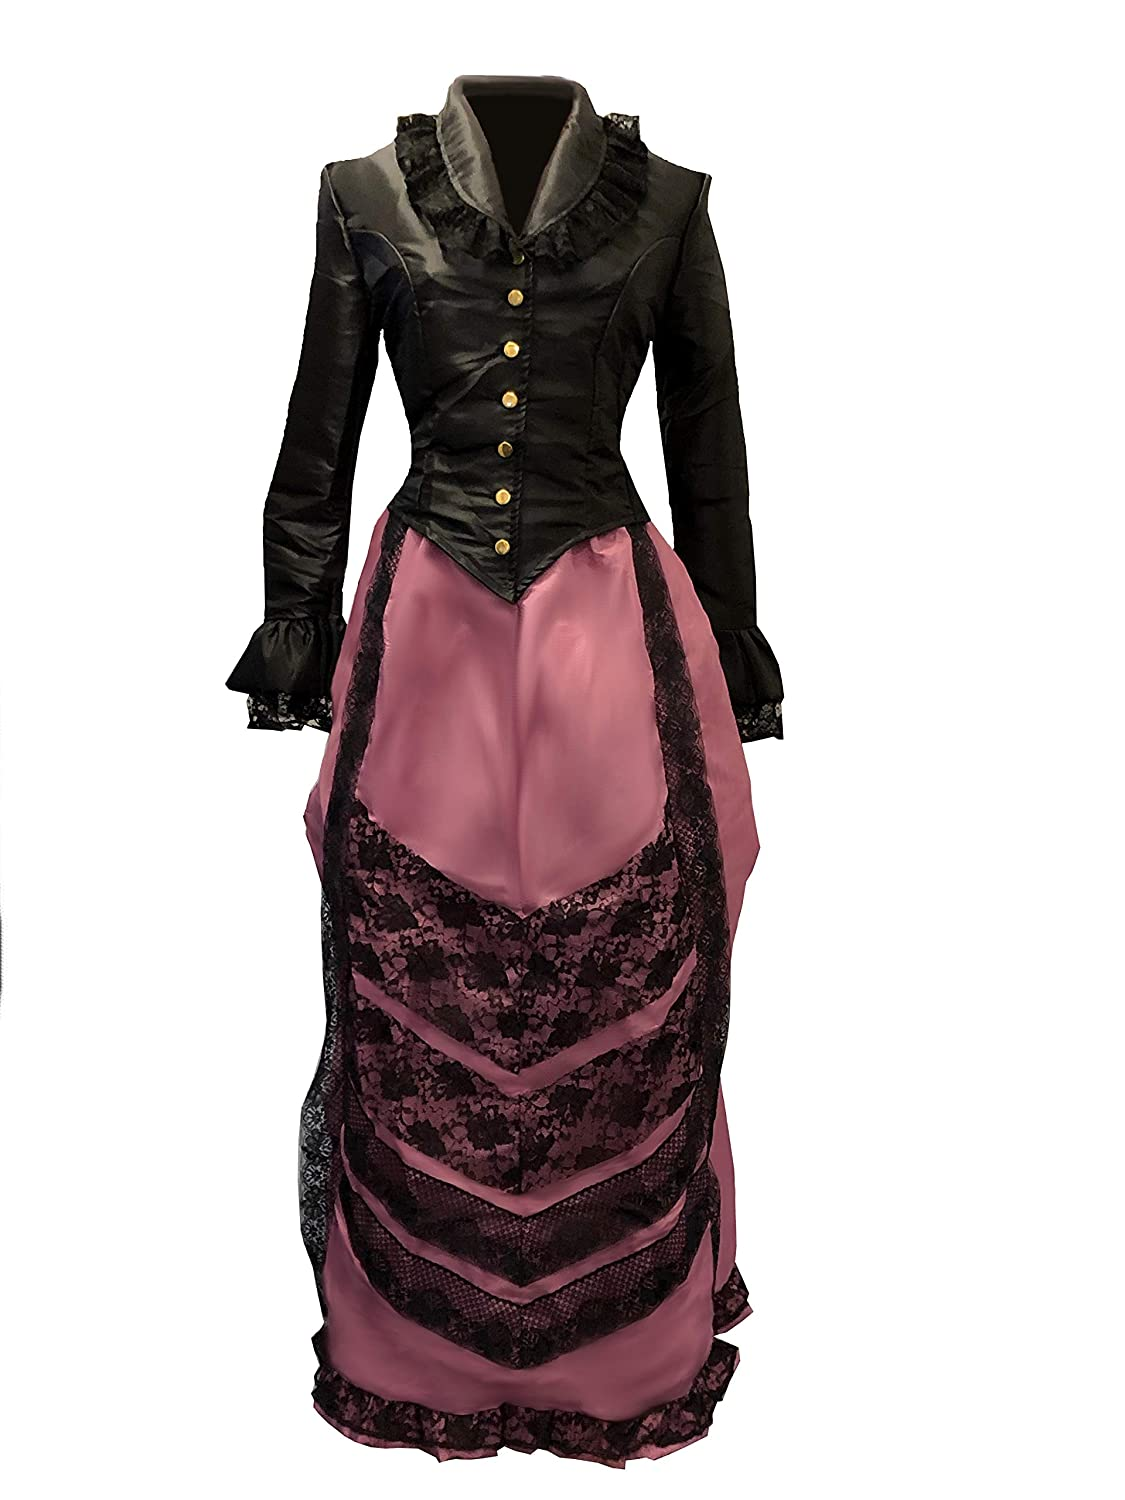 Old Fashioned Dresses | Old Dress Styles Reminisce Victorian Cosplay Costume $49.99 AT vintagedancer.com